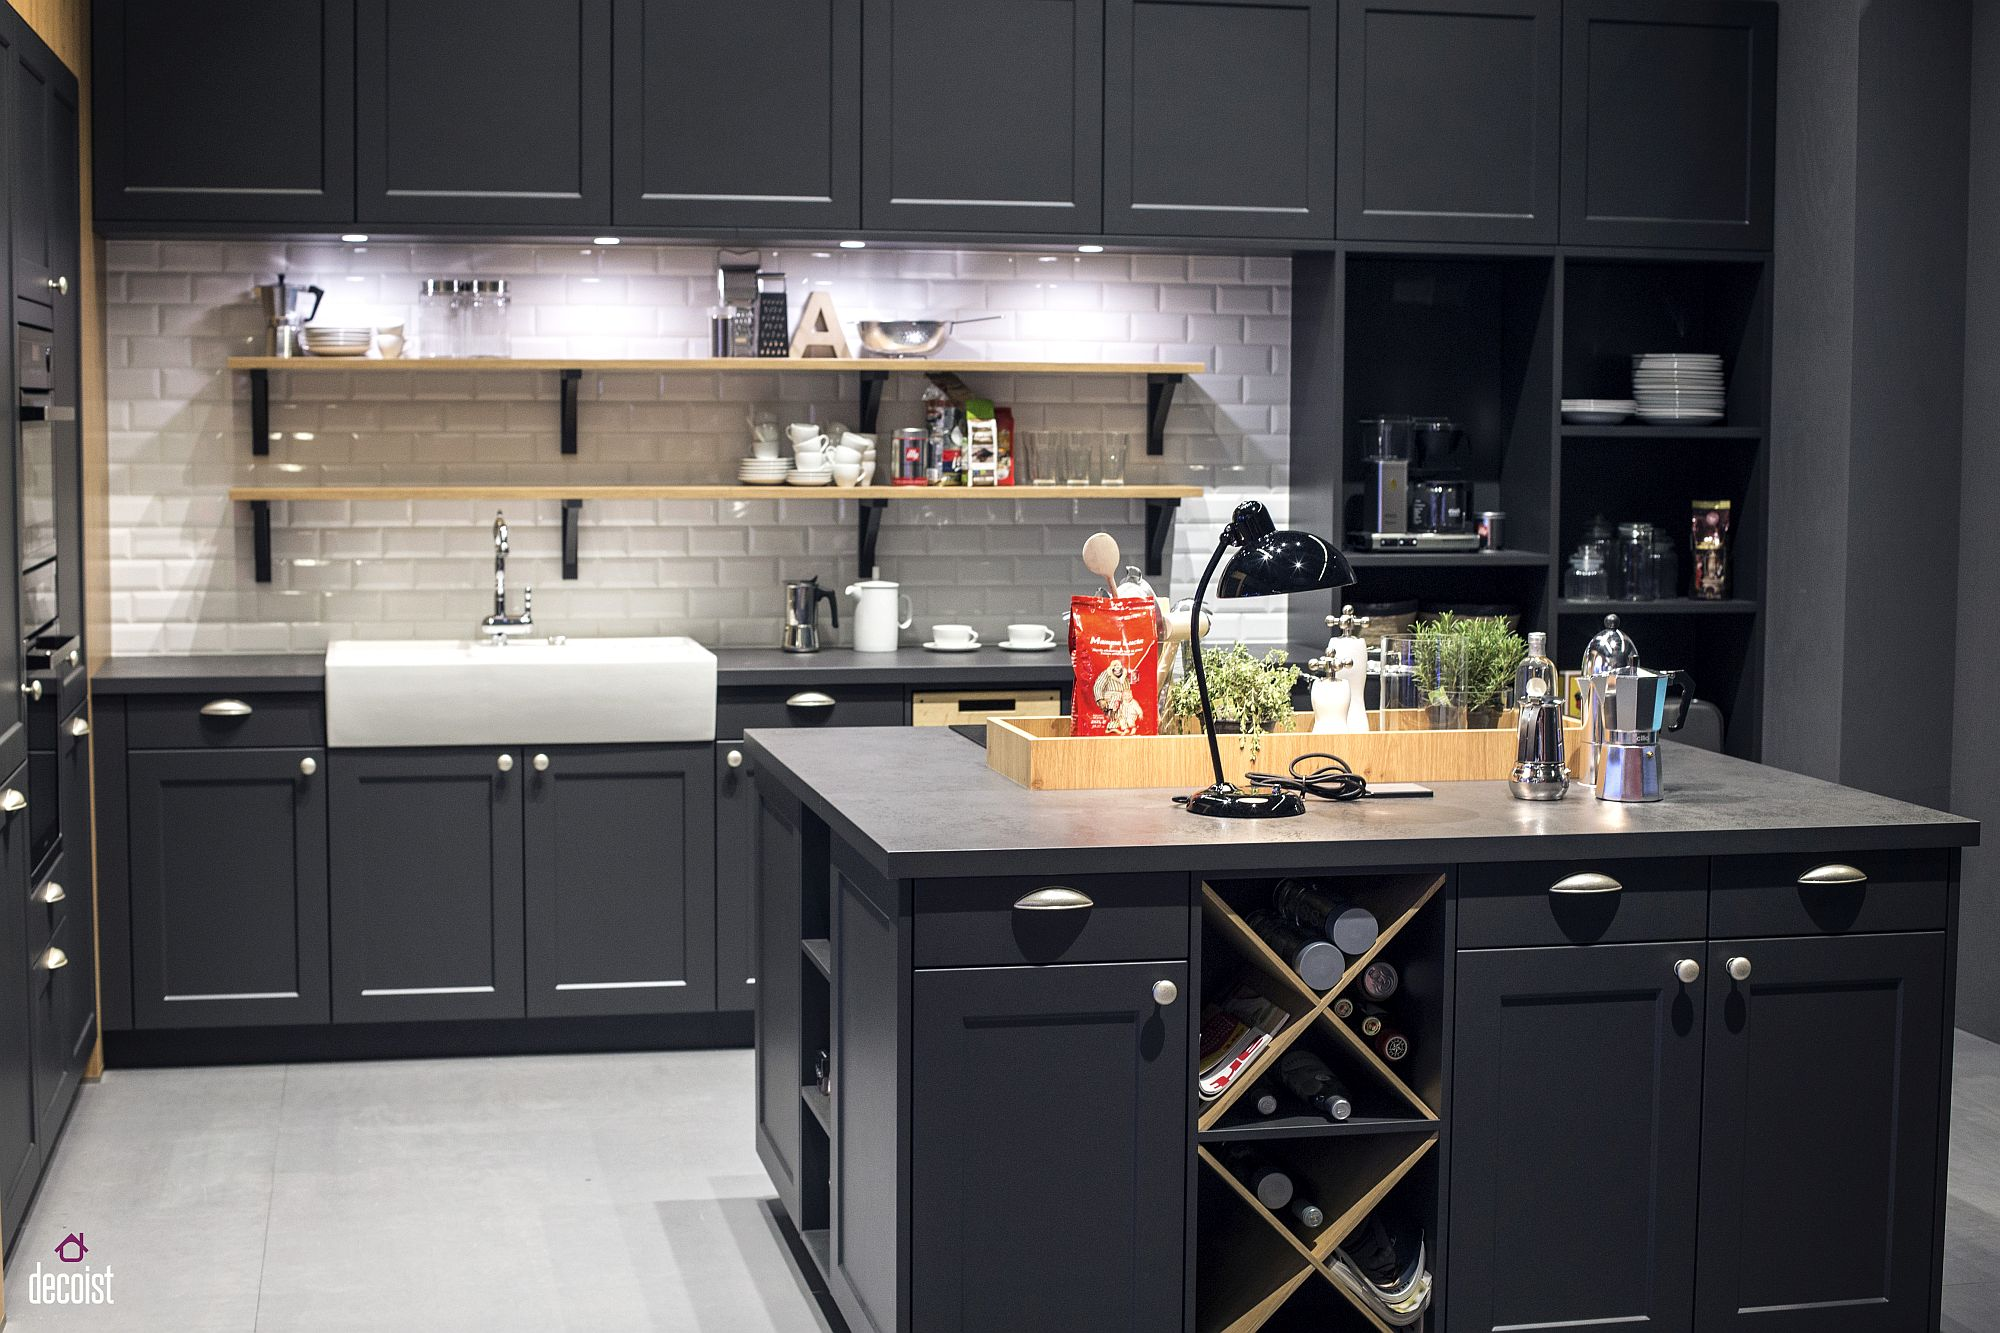 Polished modern kitchen in dark gray and white